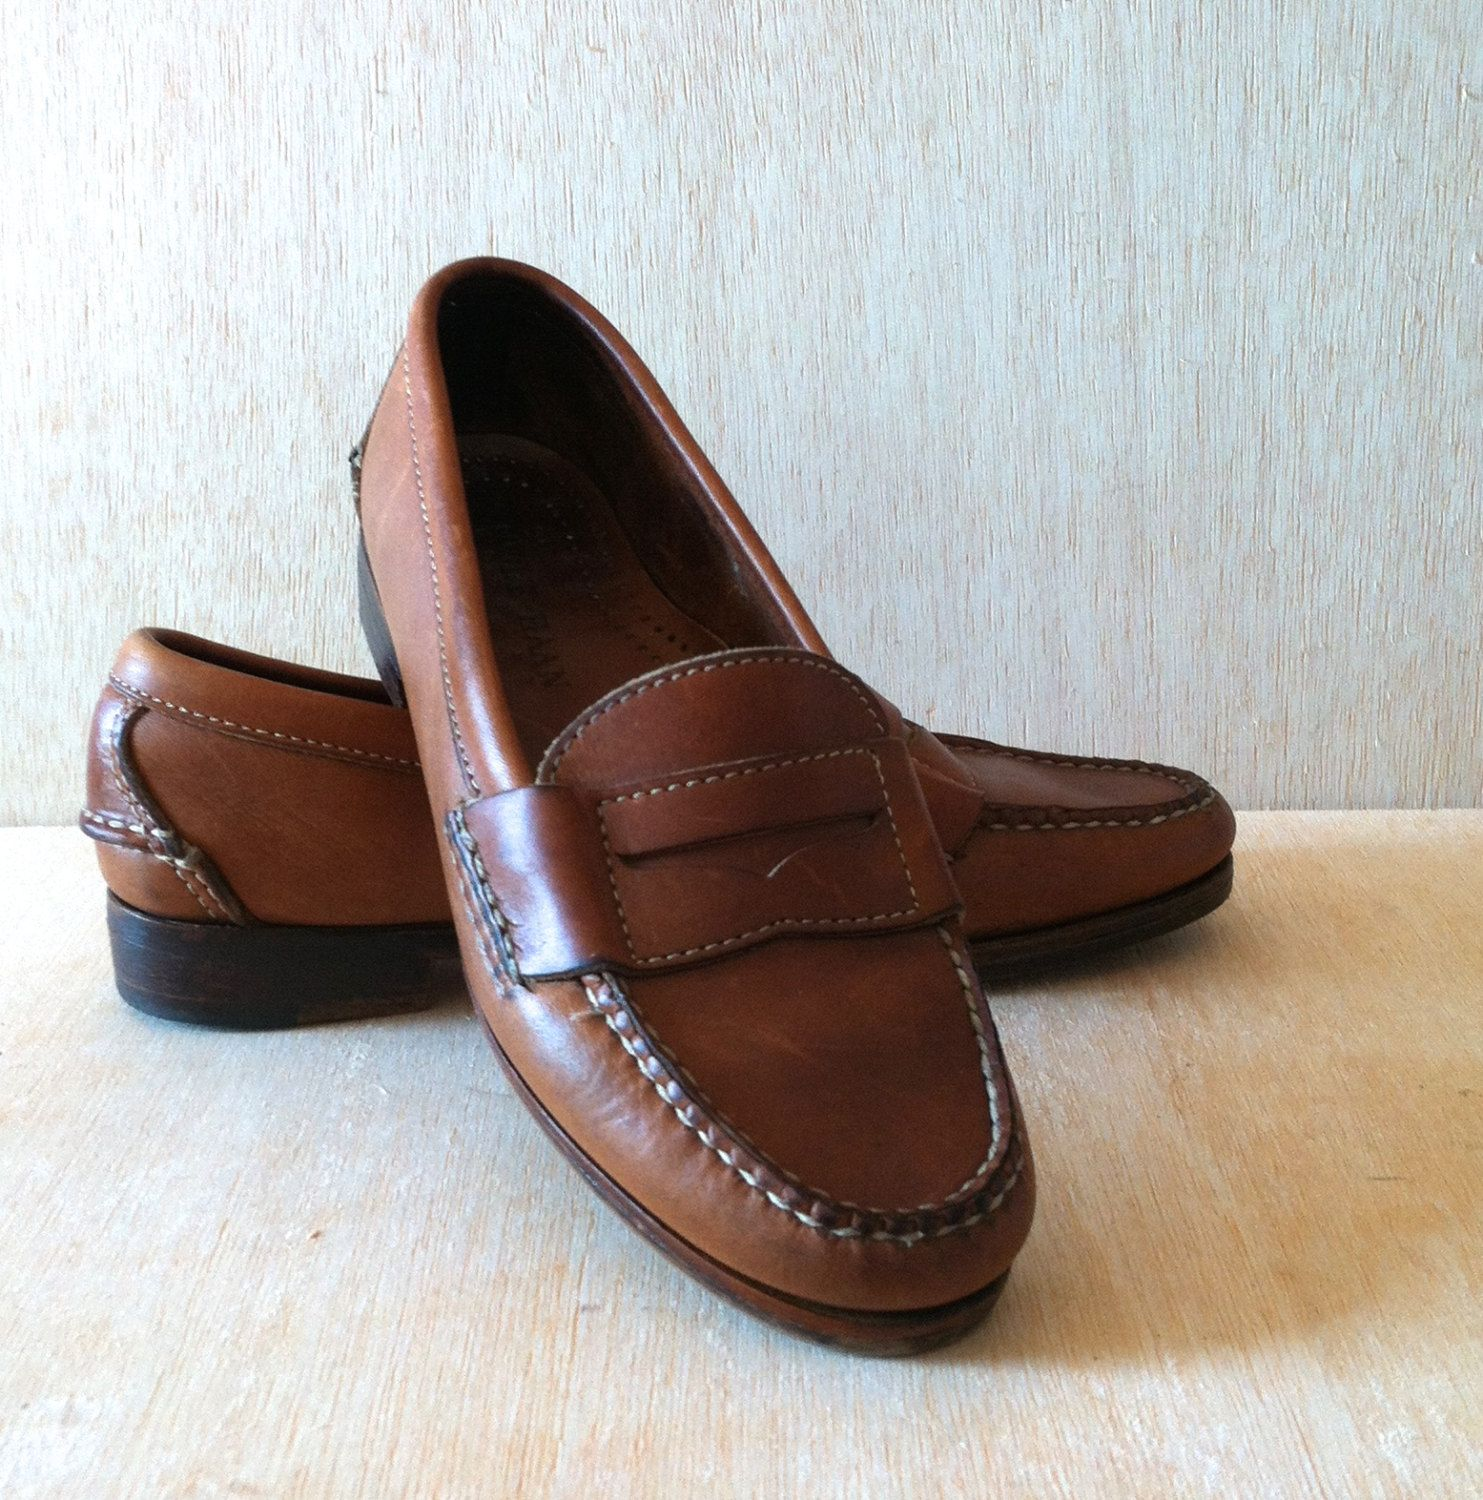 Vintage 1980s Preppy Cole Haan Cognac Brown Leather Penny Loafer Oxford  Womens Size 6 by ForestaVintage